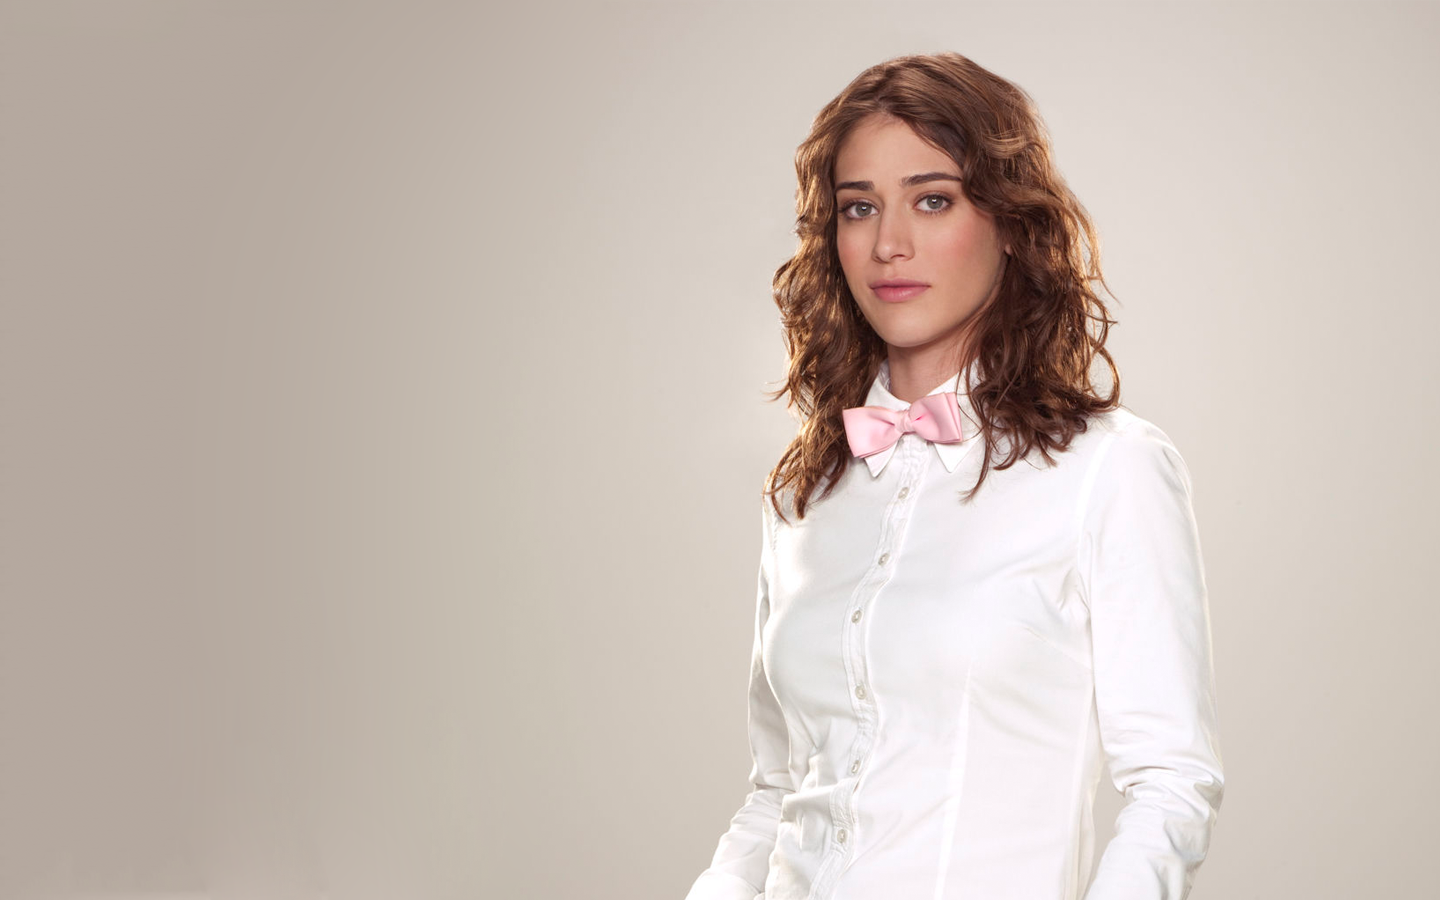 Lizzy Caplan Fresh New Hd Wallpaper Wallpaper